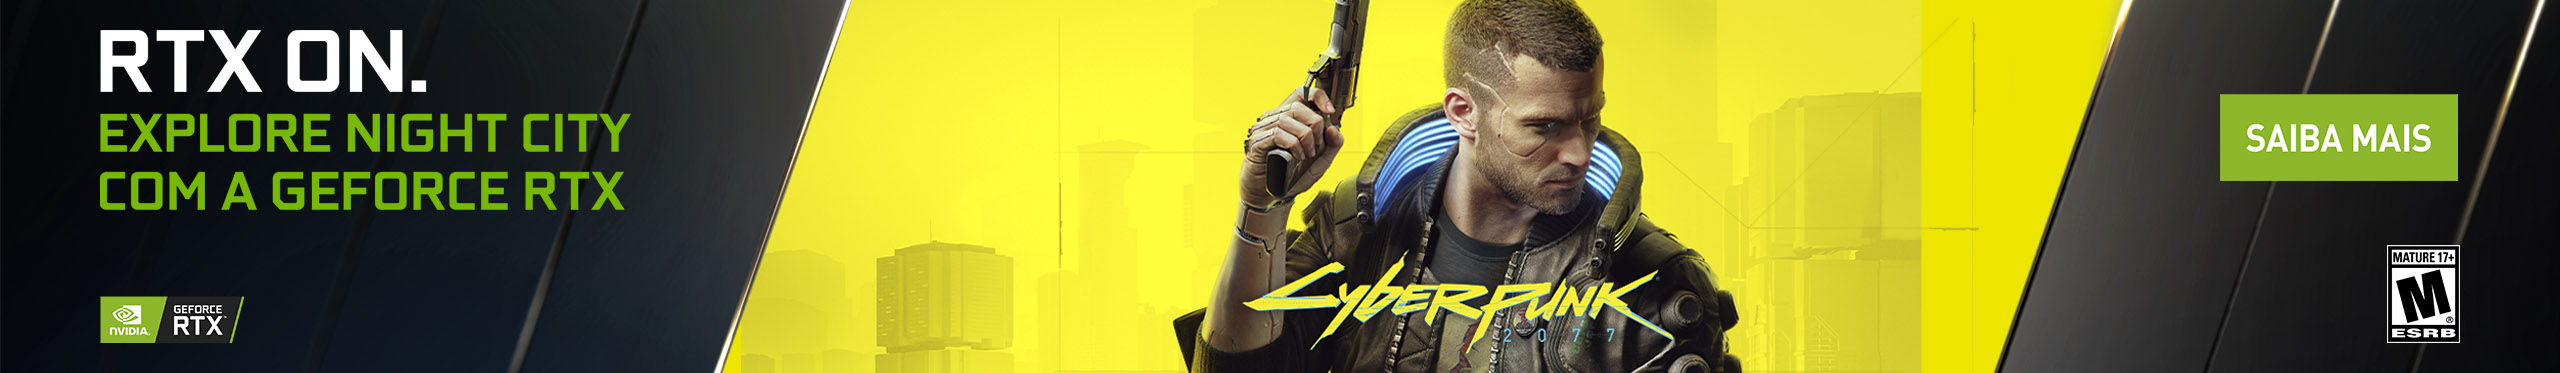 Jogue Cyberpunk 2077 com a GeForce RTX